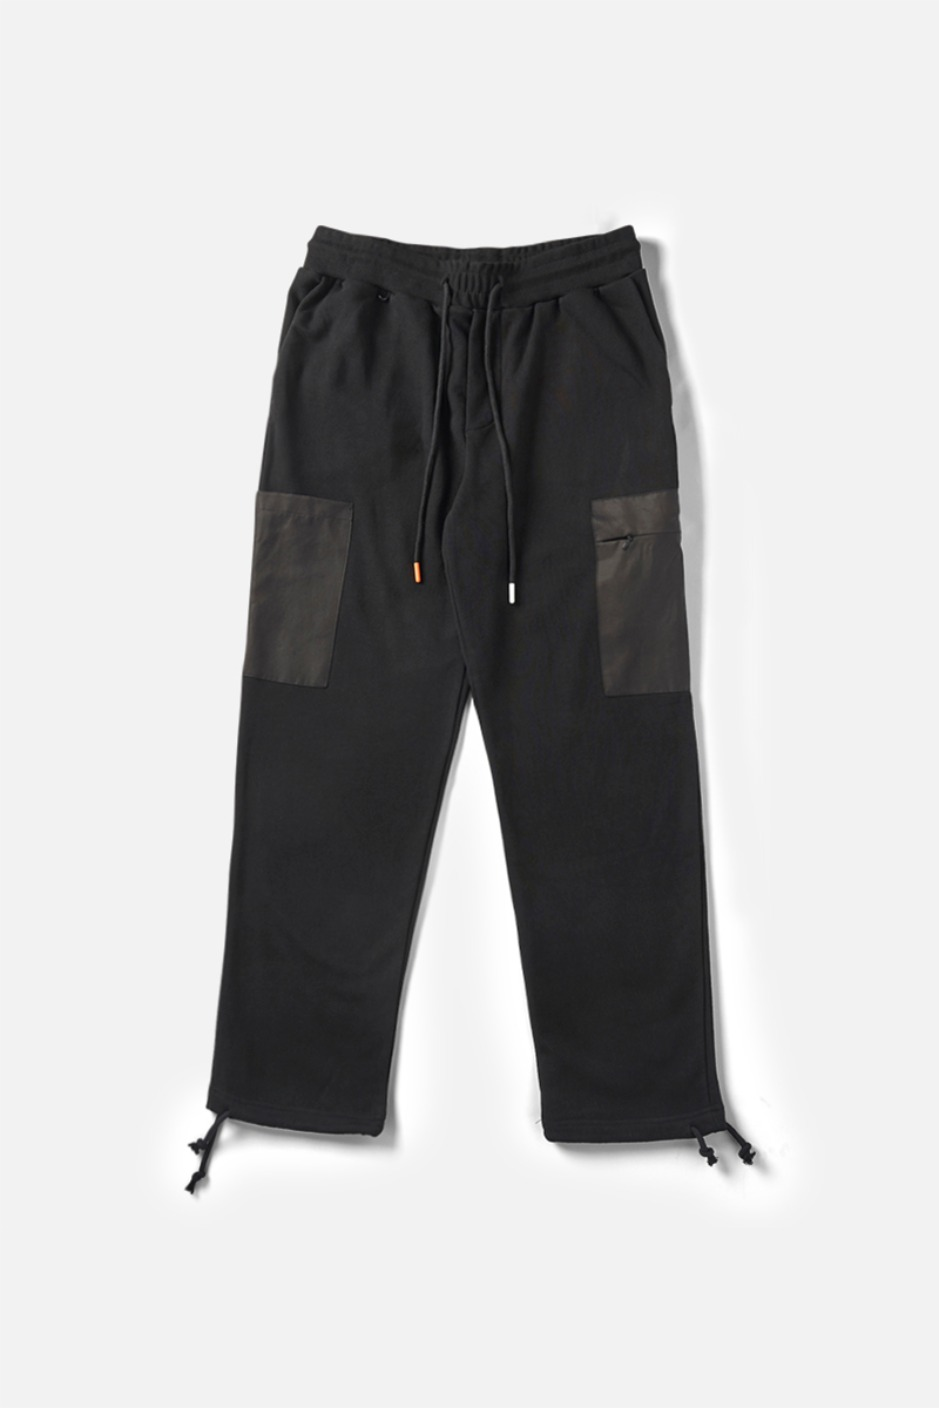 RAWROW X AECA WHITE CARGO PANTS-BLACK